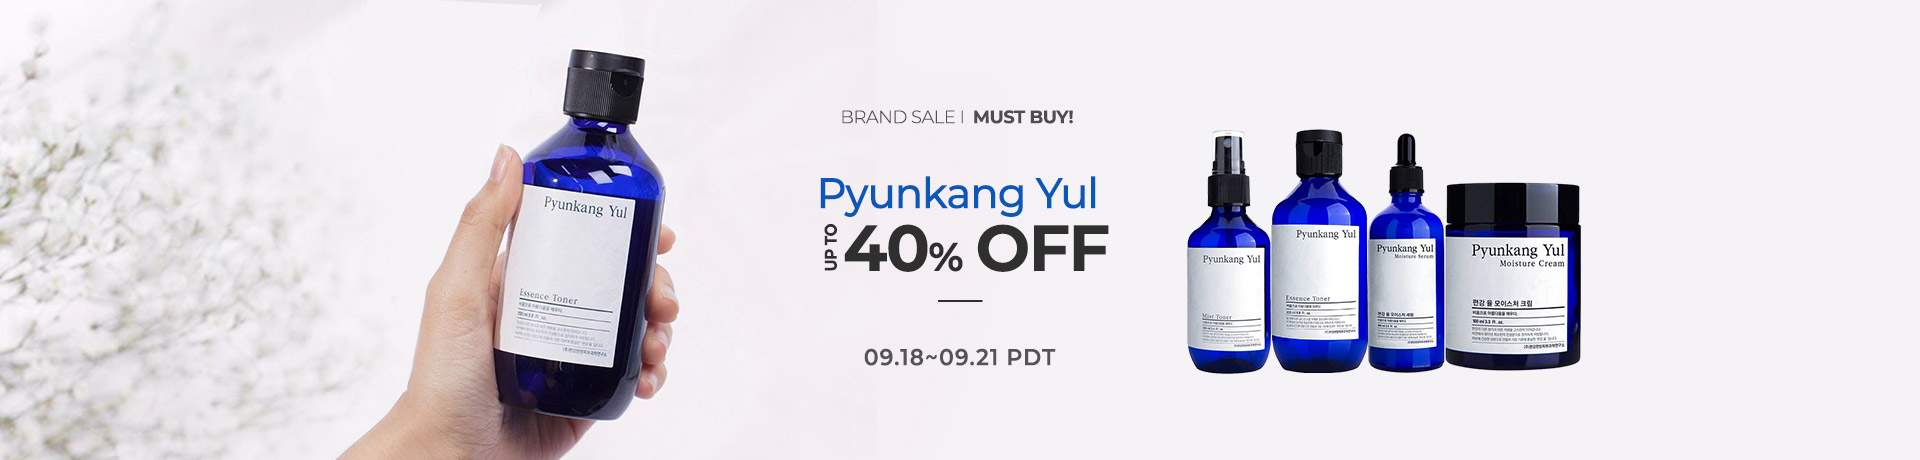 Pyunkang Yul Up to 40% OFF